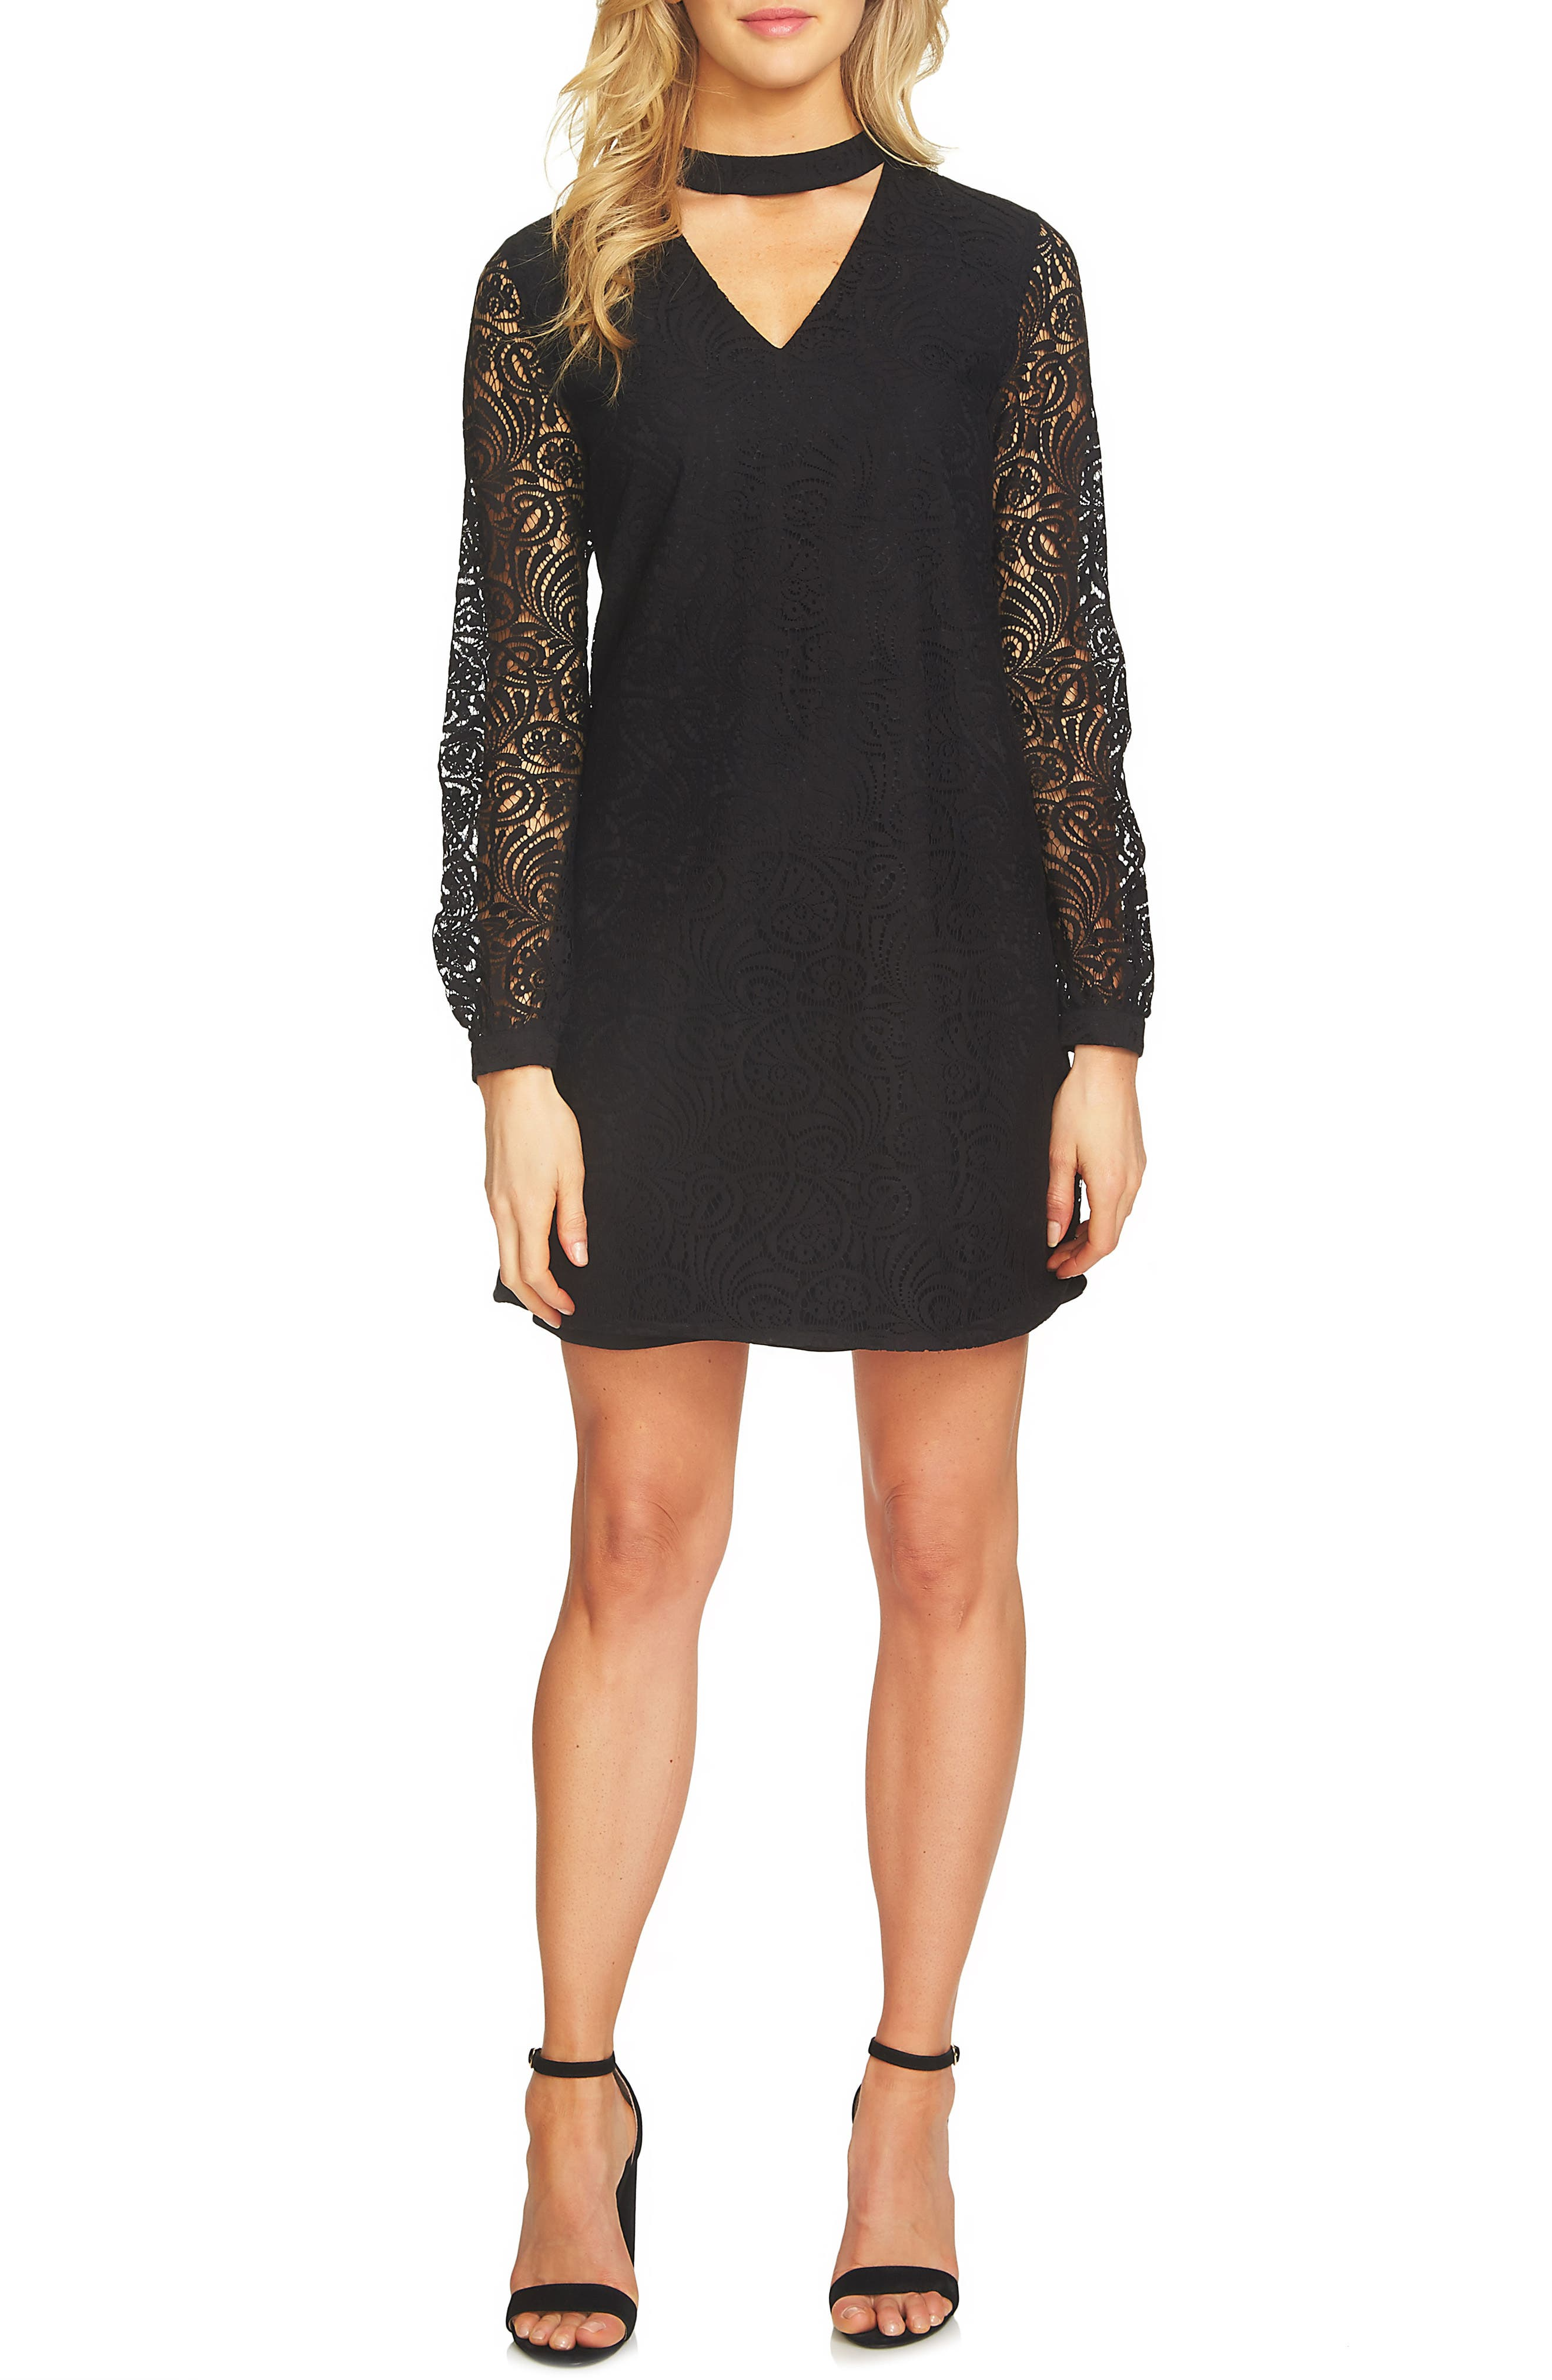 CeCe Mock Choker Neck A-Line Lace Dress